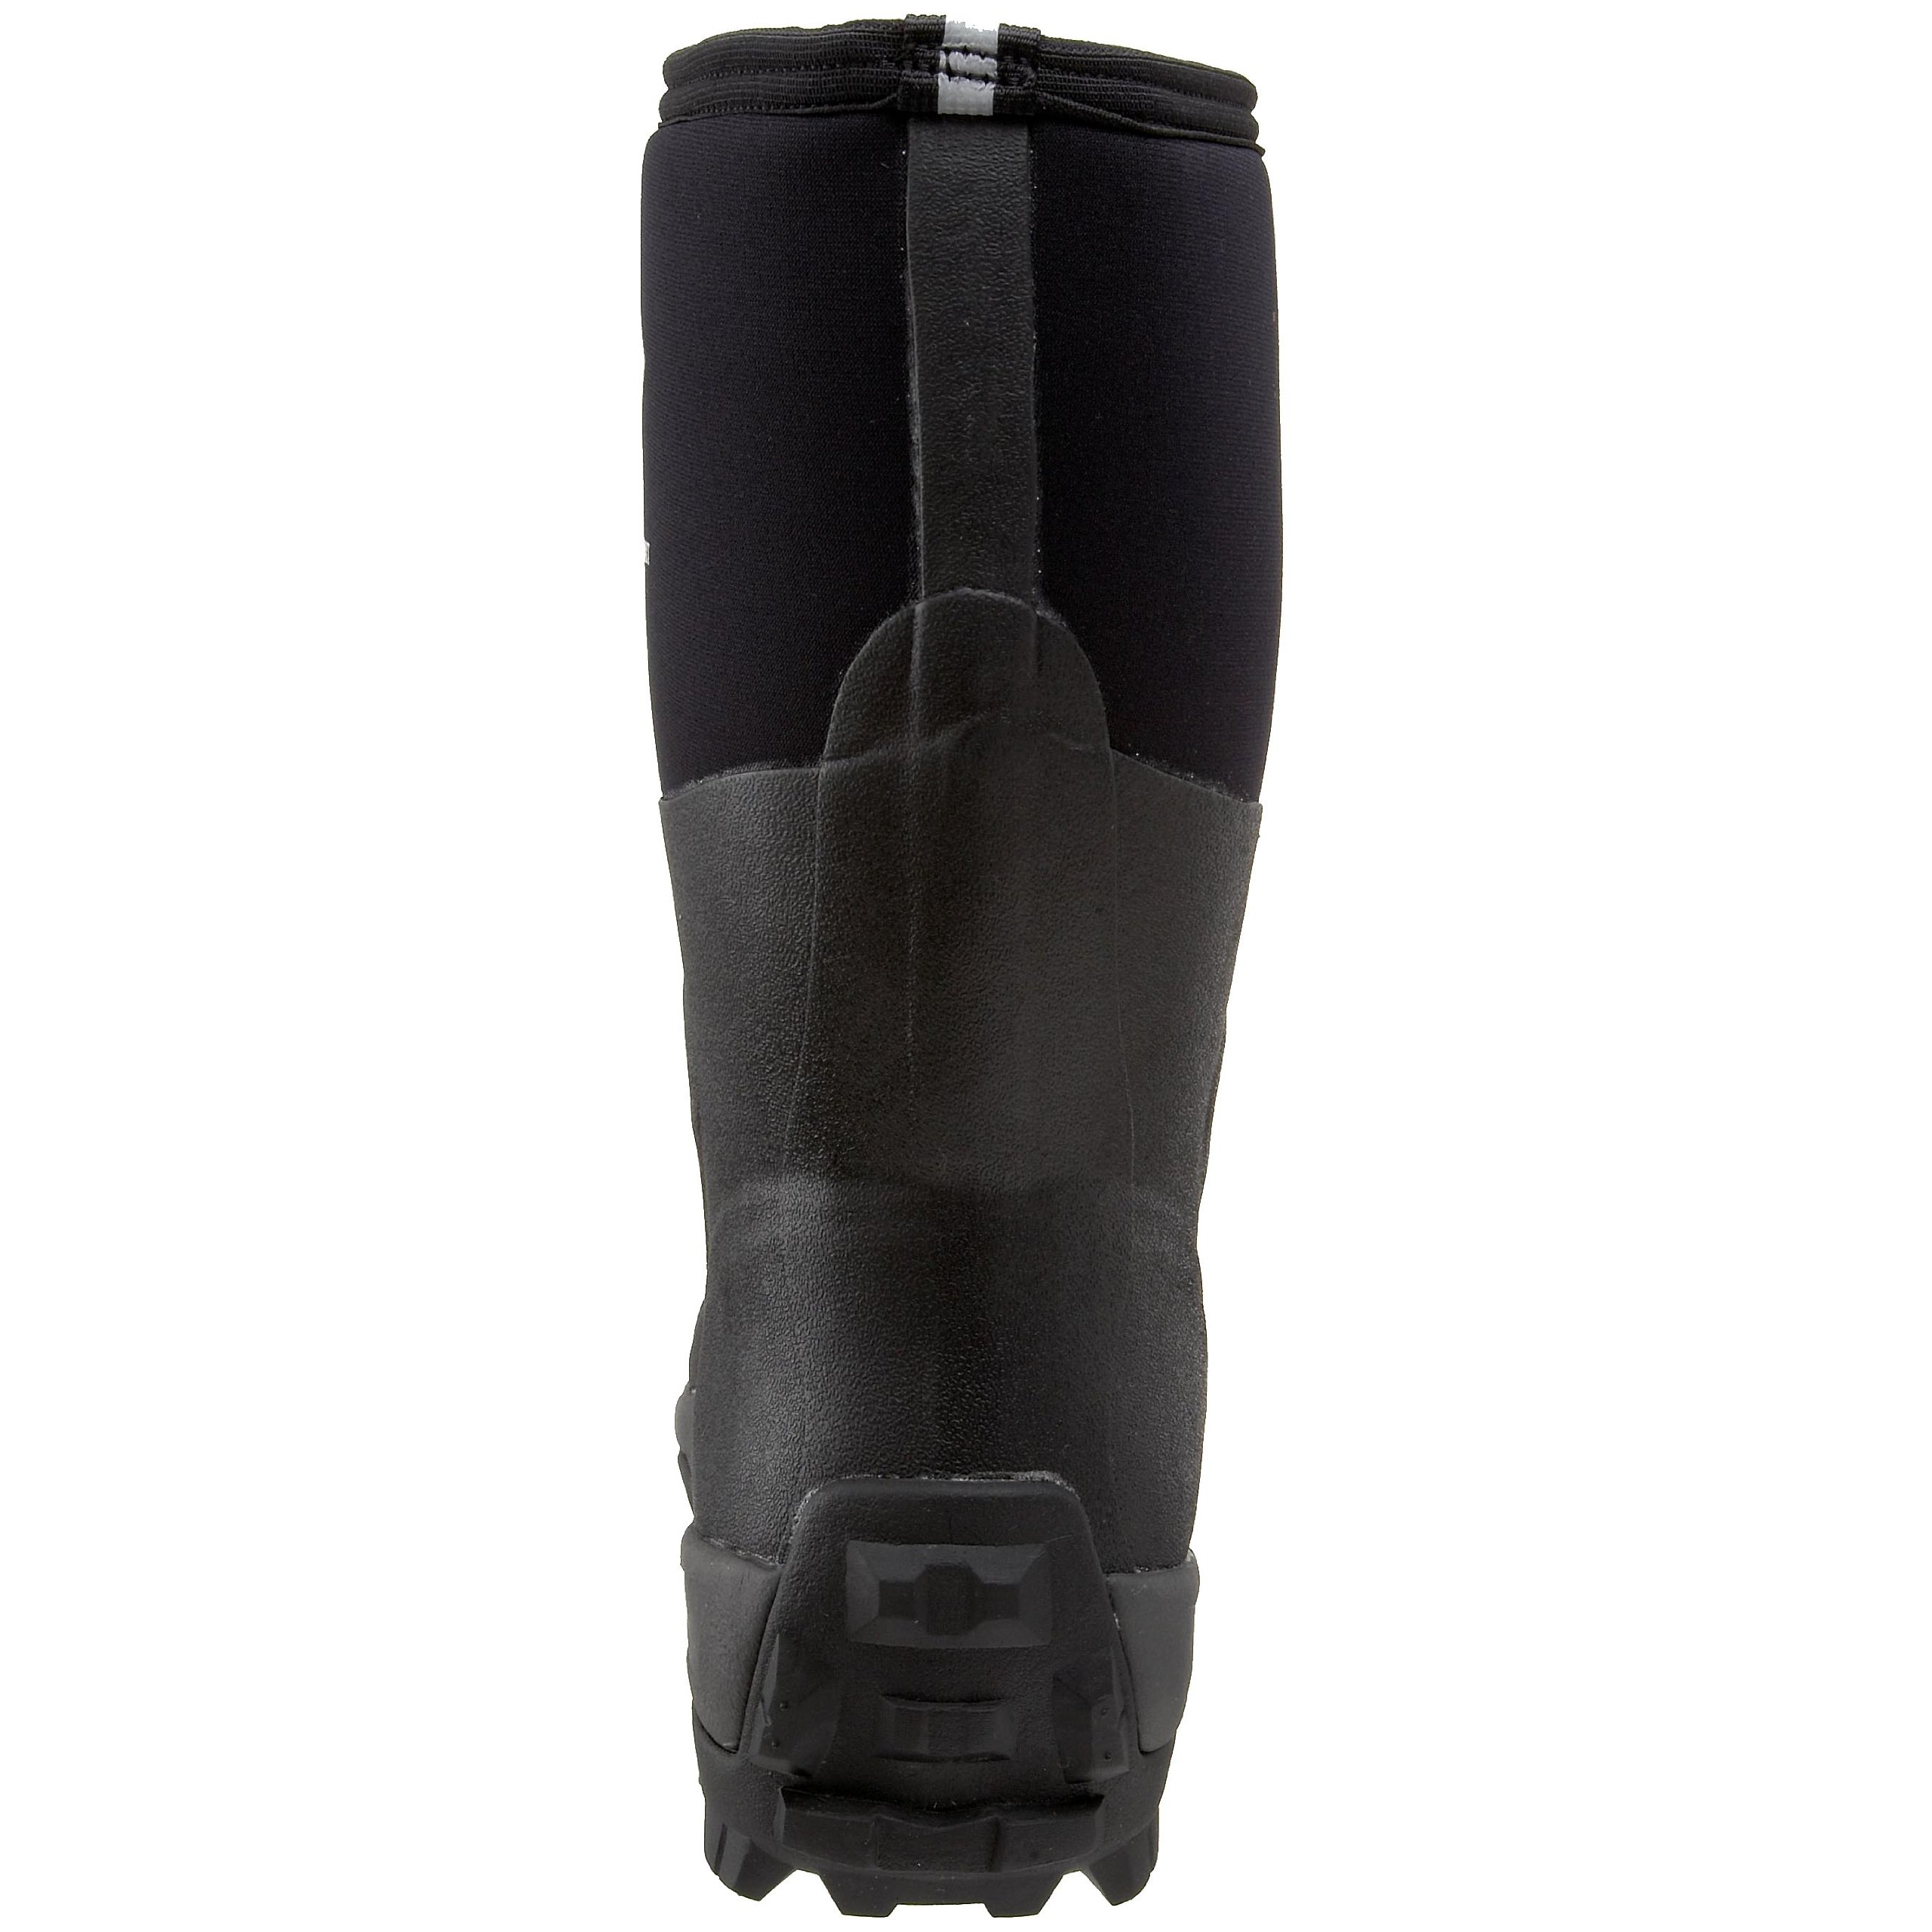 The Original MuckBoots Arctic Sport Mid Outdoor Boot,Black,12 M US Mens/13 M US Womens by Muck Boot (Image #2)